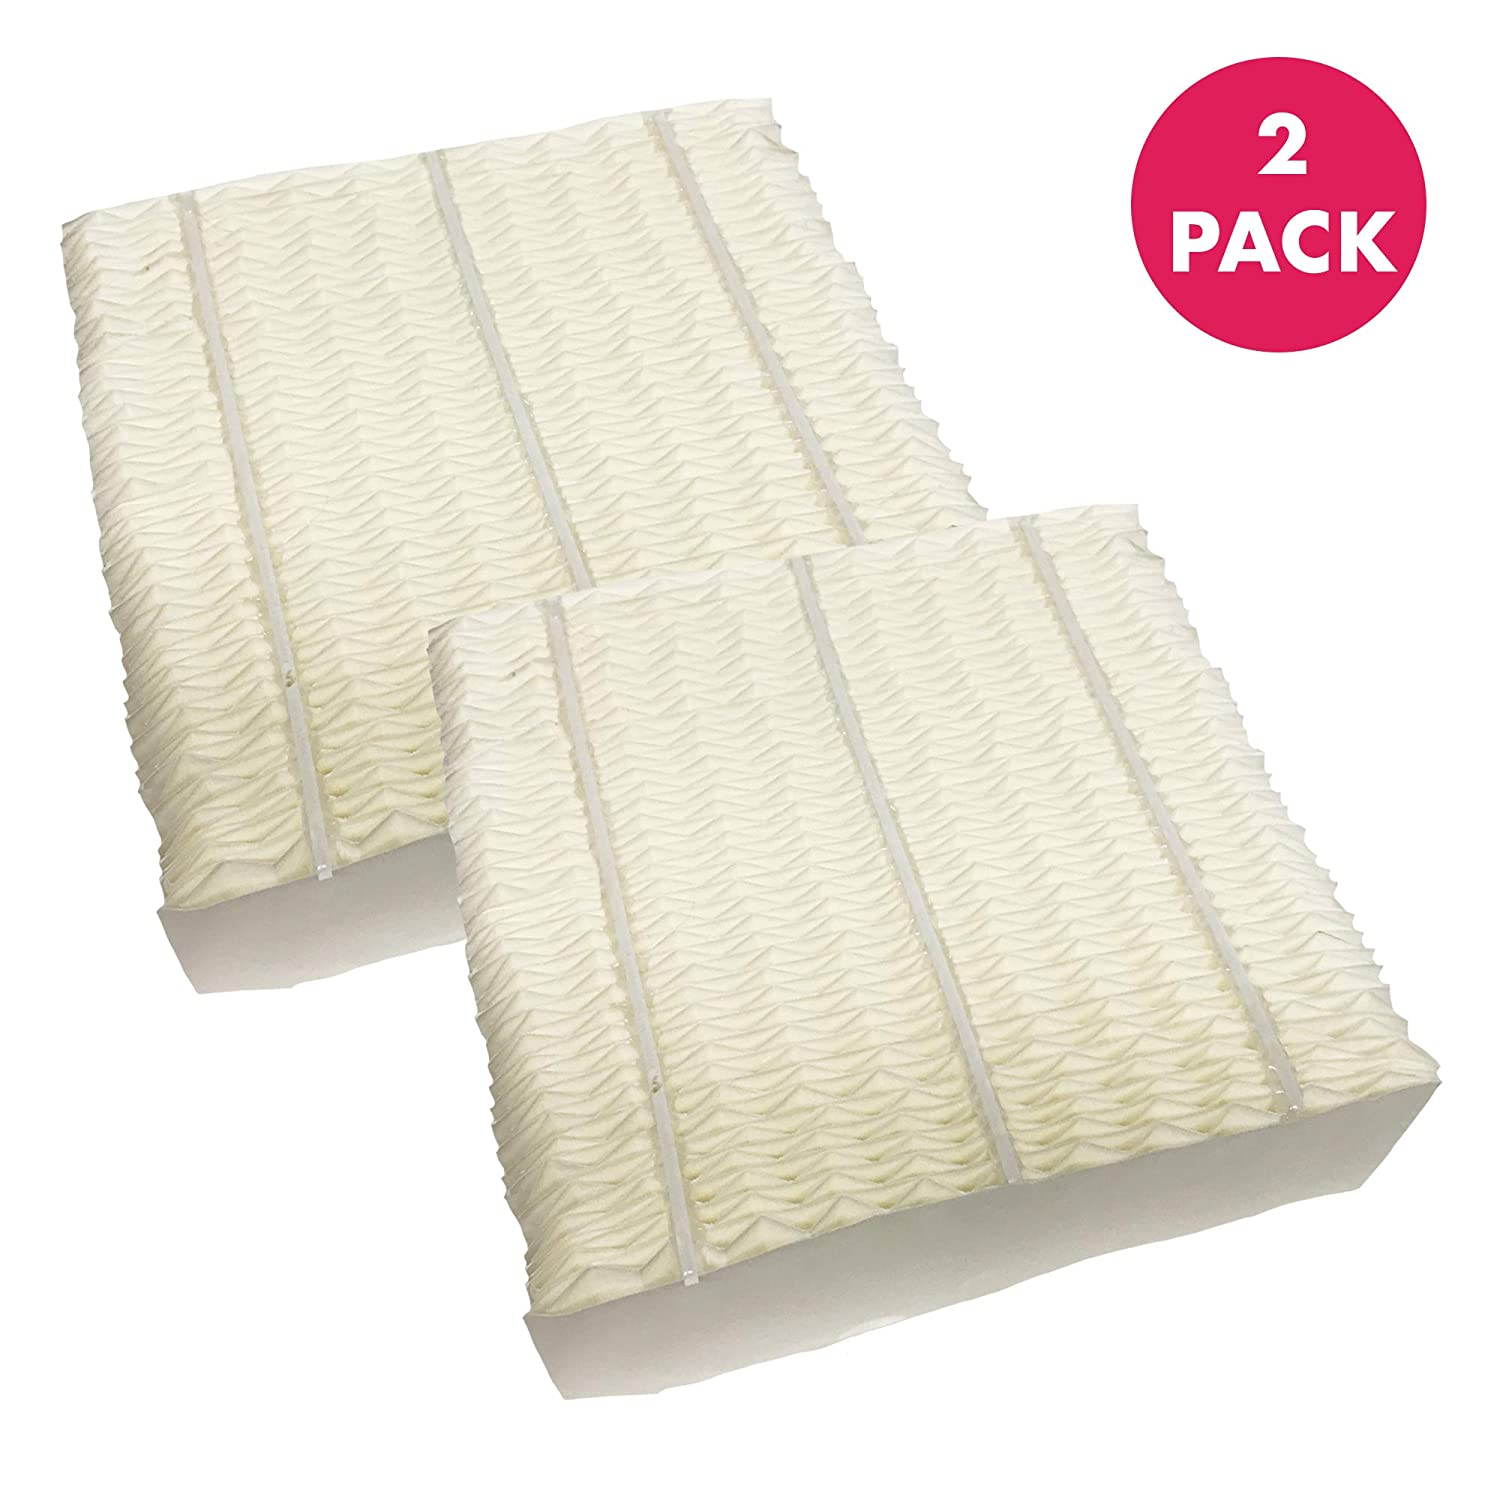 Models Spacesaver 800,8000 Series Console,Bulk Pack Think Crucial Replacement Humidifier Filters Compatible with Aircare 1043 Paper Wick Humidifier Filter Part #1043-10.8 x 4.2 x 12.5 4 Pack